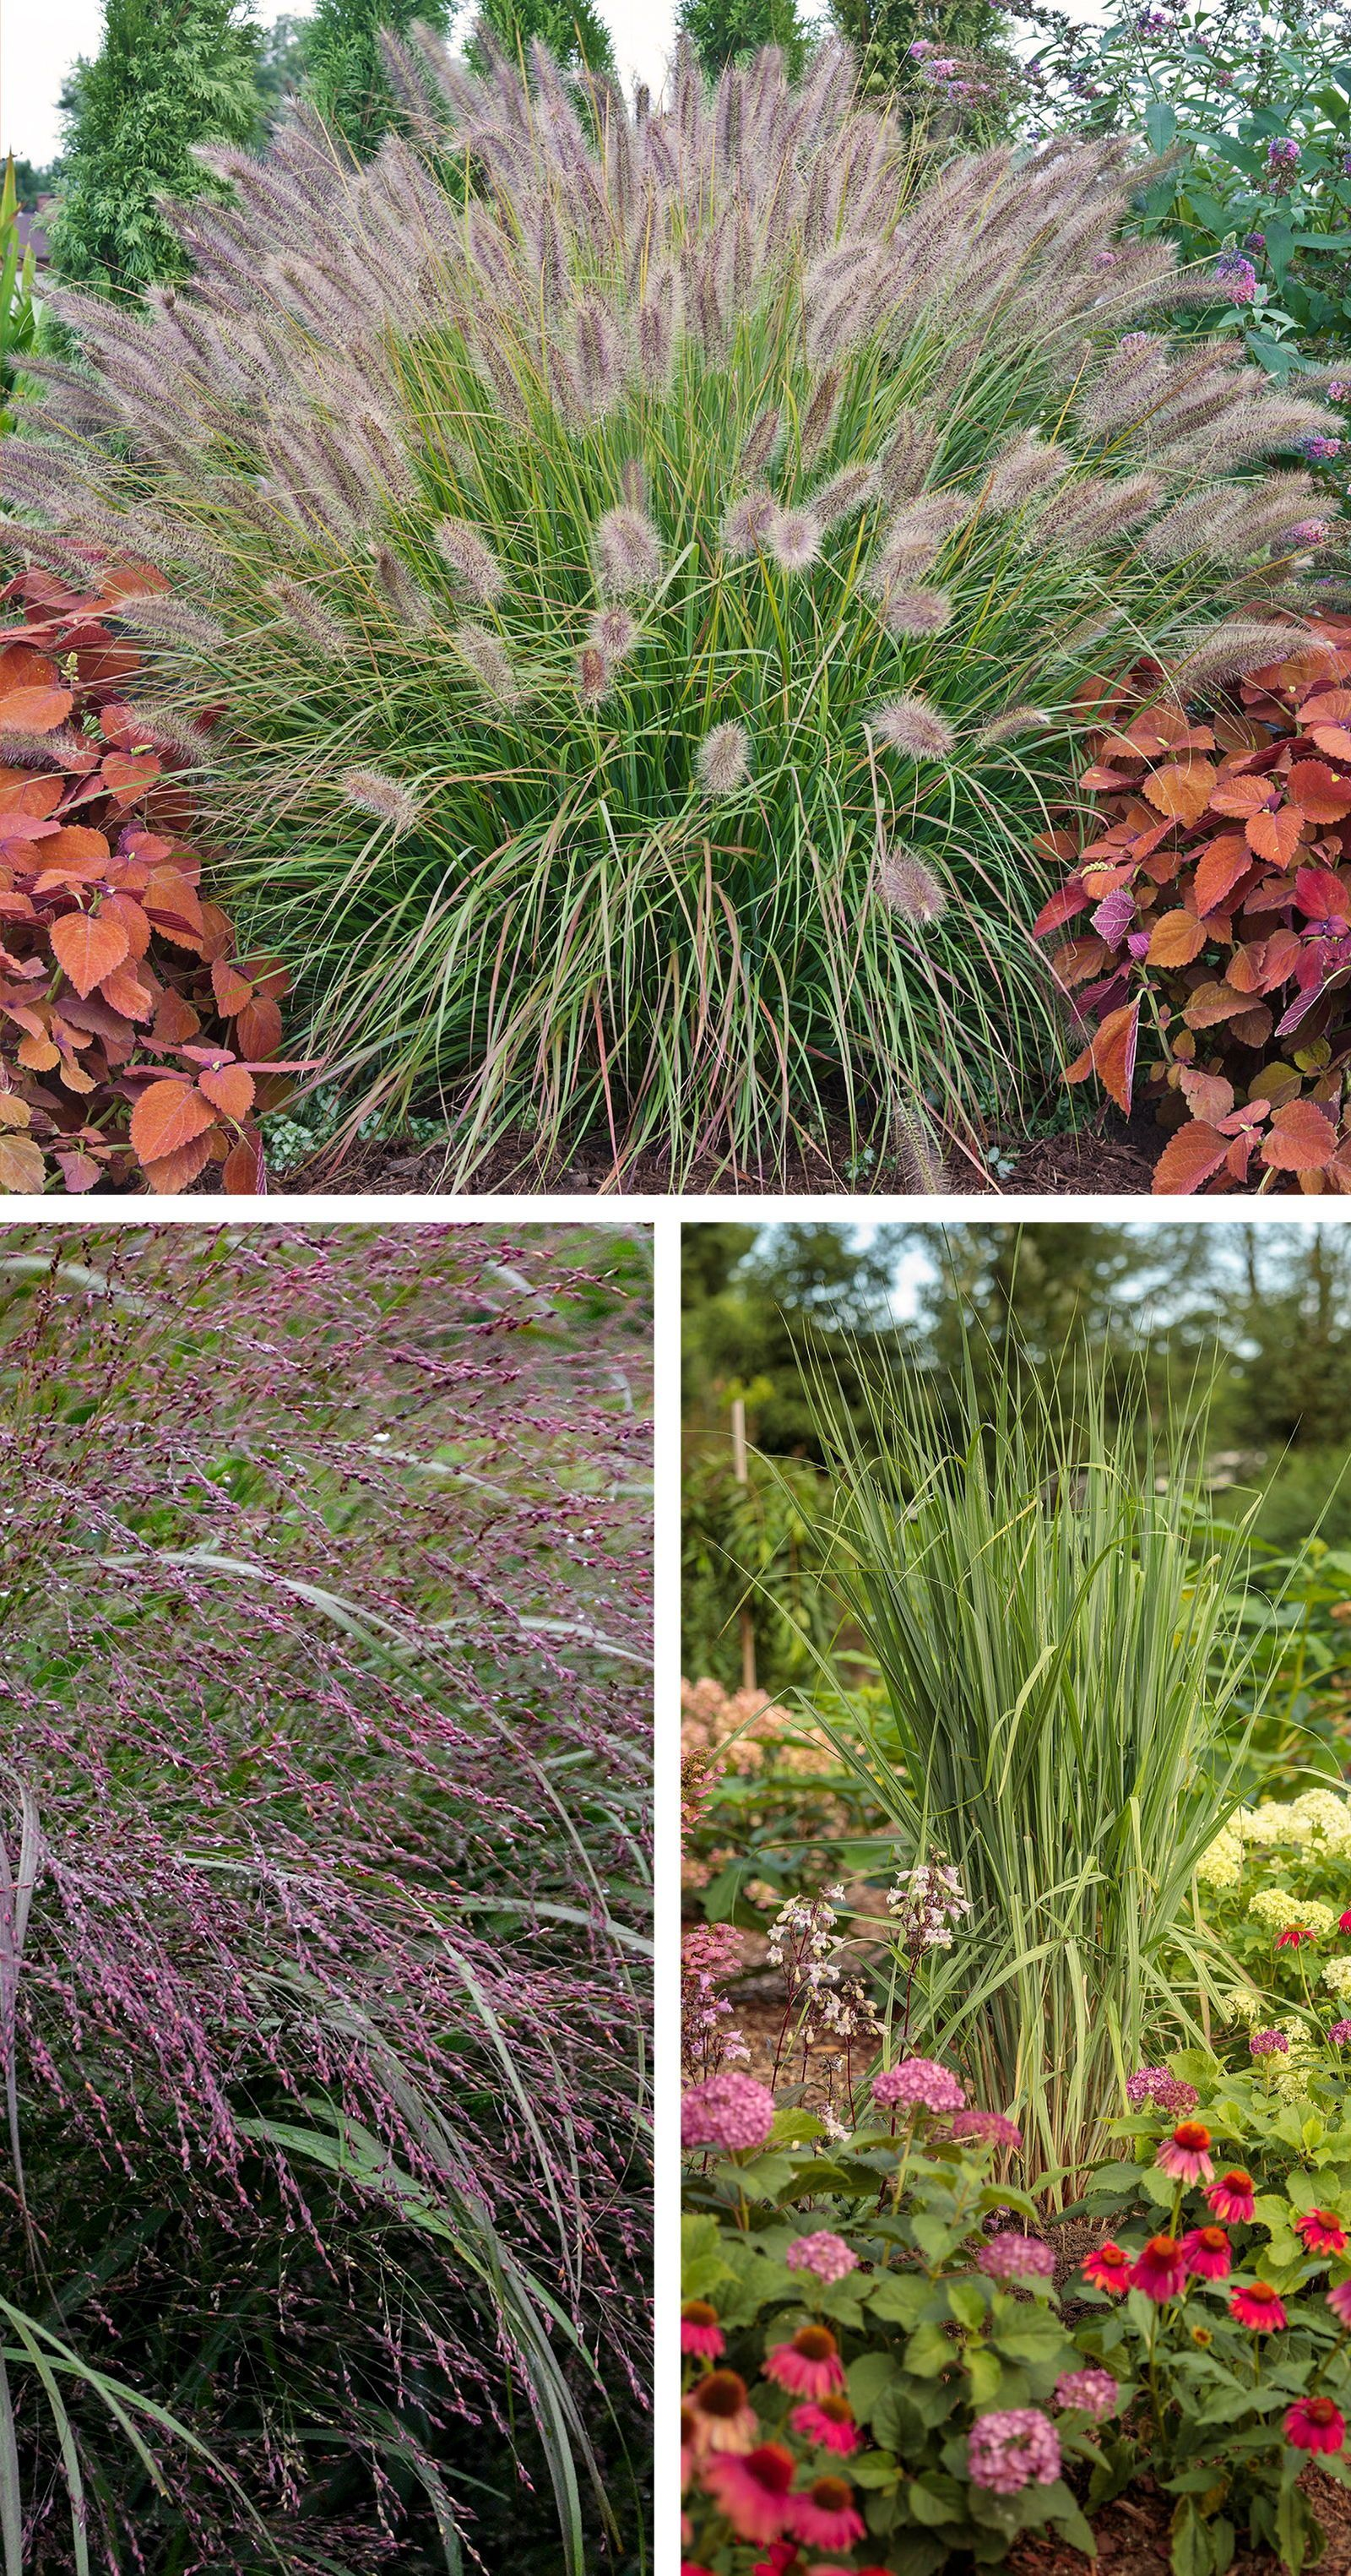 Ornamental Grasses Of The Prairie Winds Collection Add Graceful Texture And Movement To Your In 2020 Ornamental Grass Landscape Ornamental Grasses Grasses Landscaping